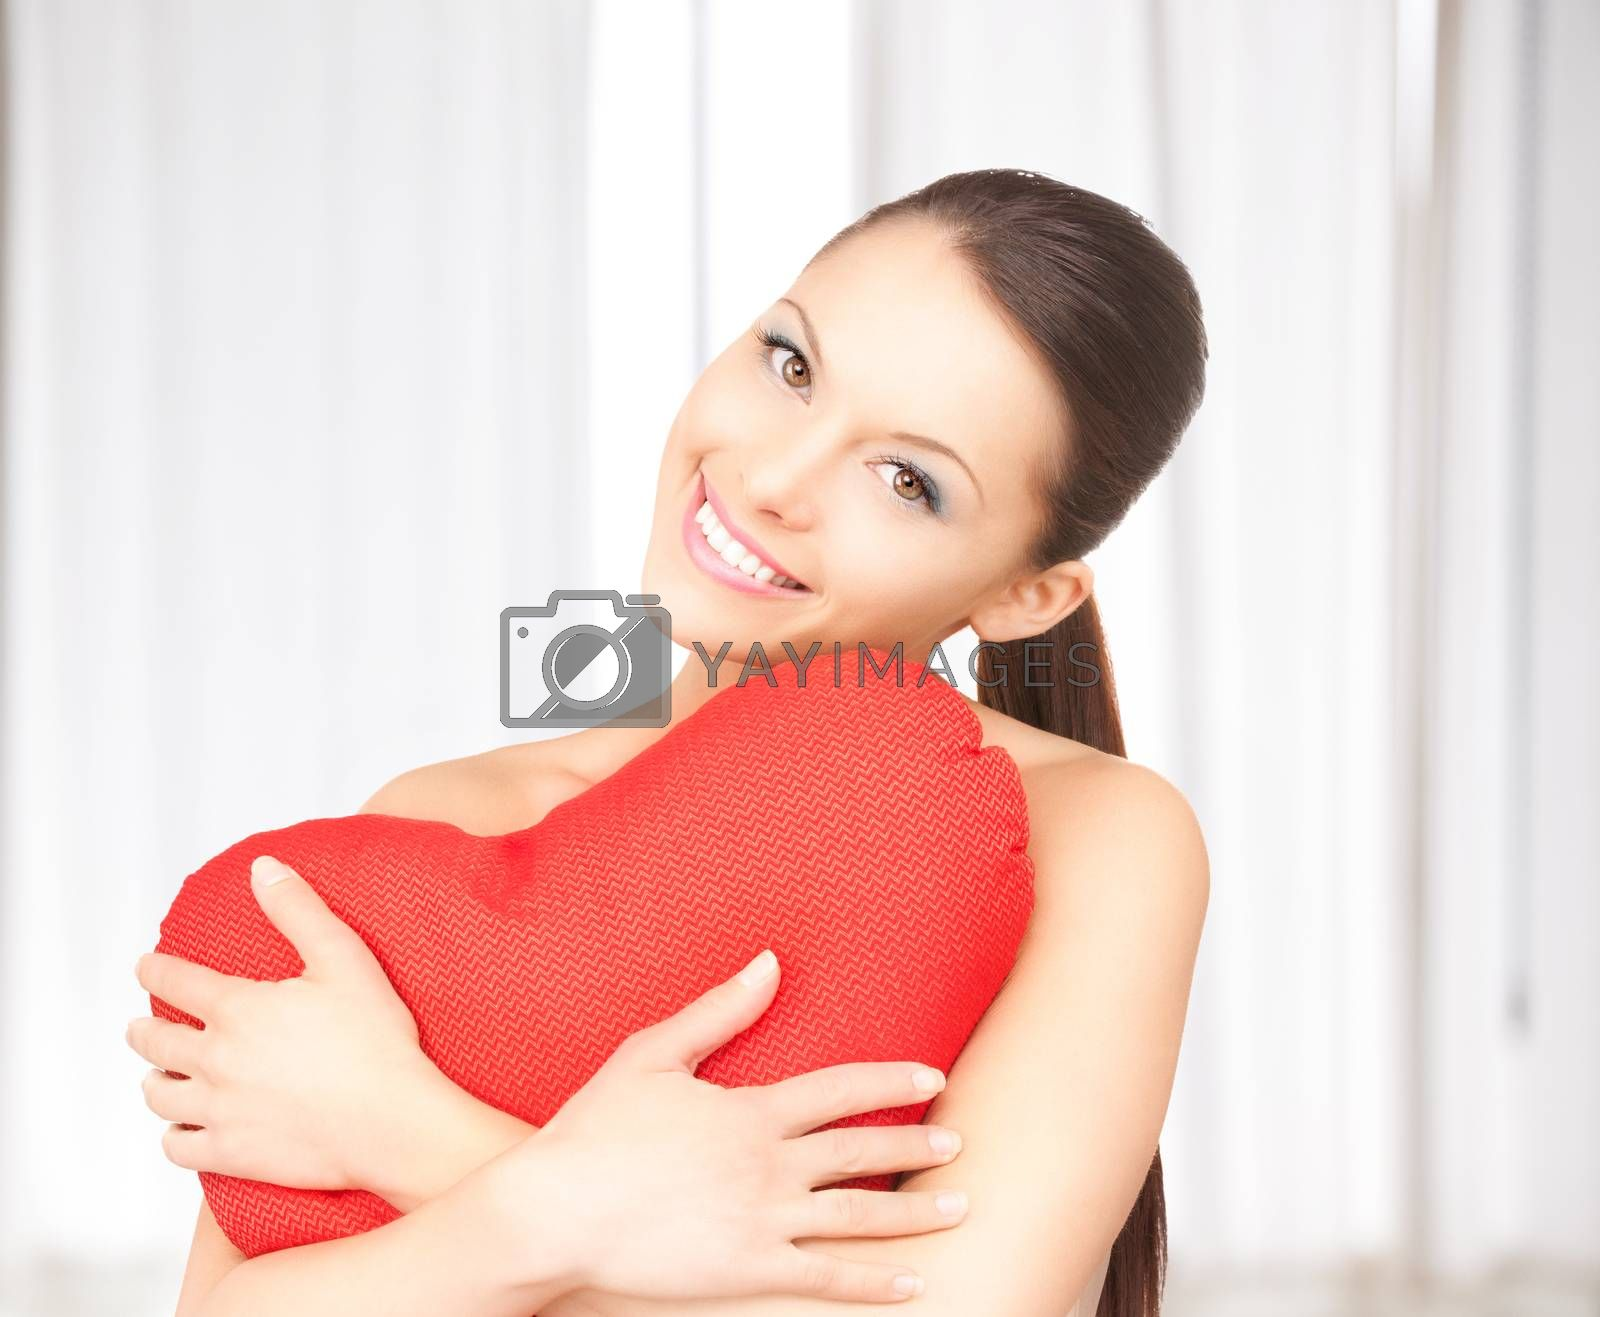 woman with red heart-shaped pillow by dolgachov